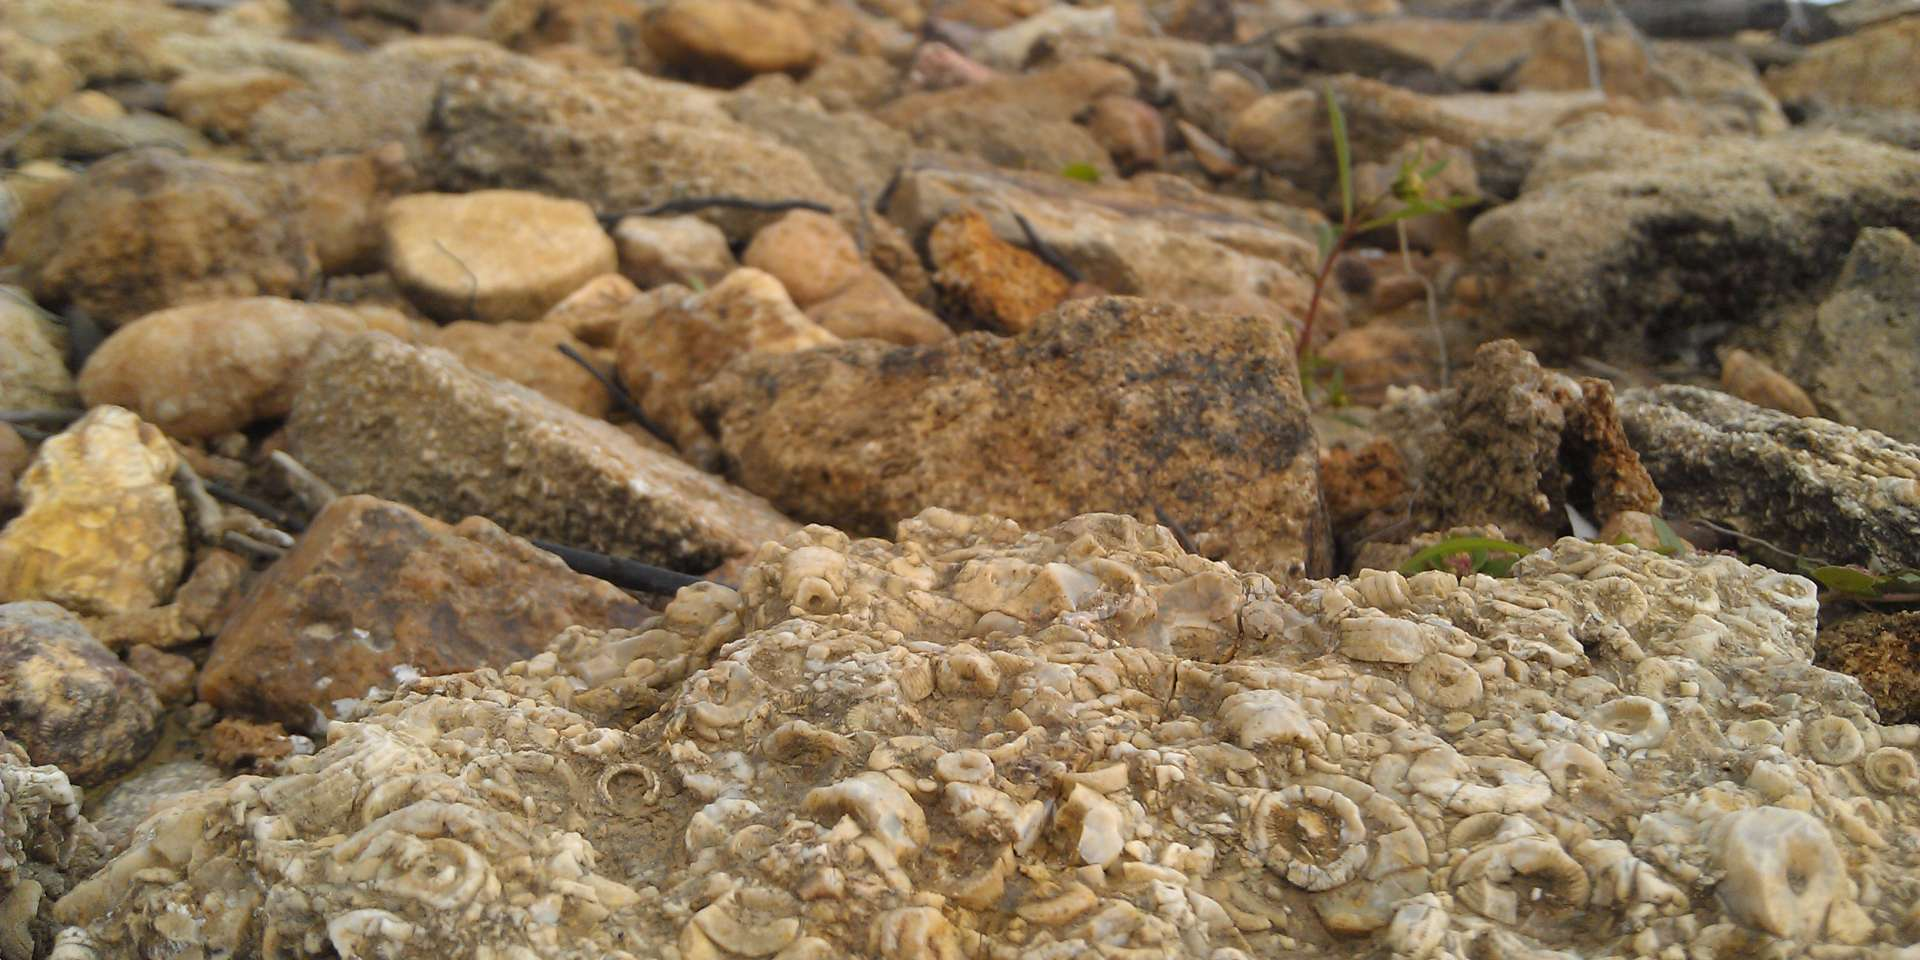 Fossils and rocks at Monroe Lake State Park